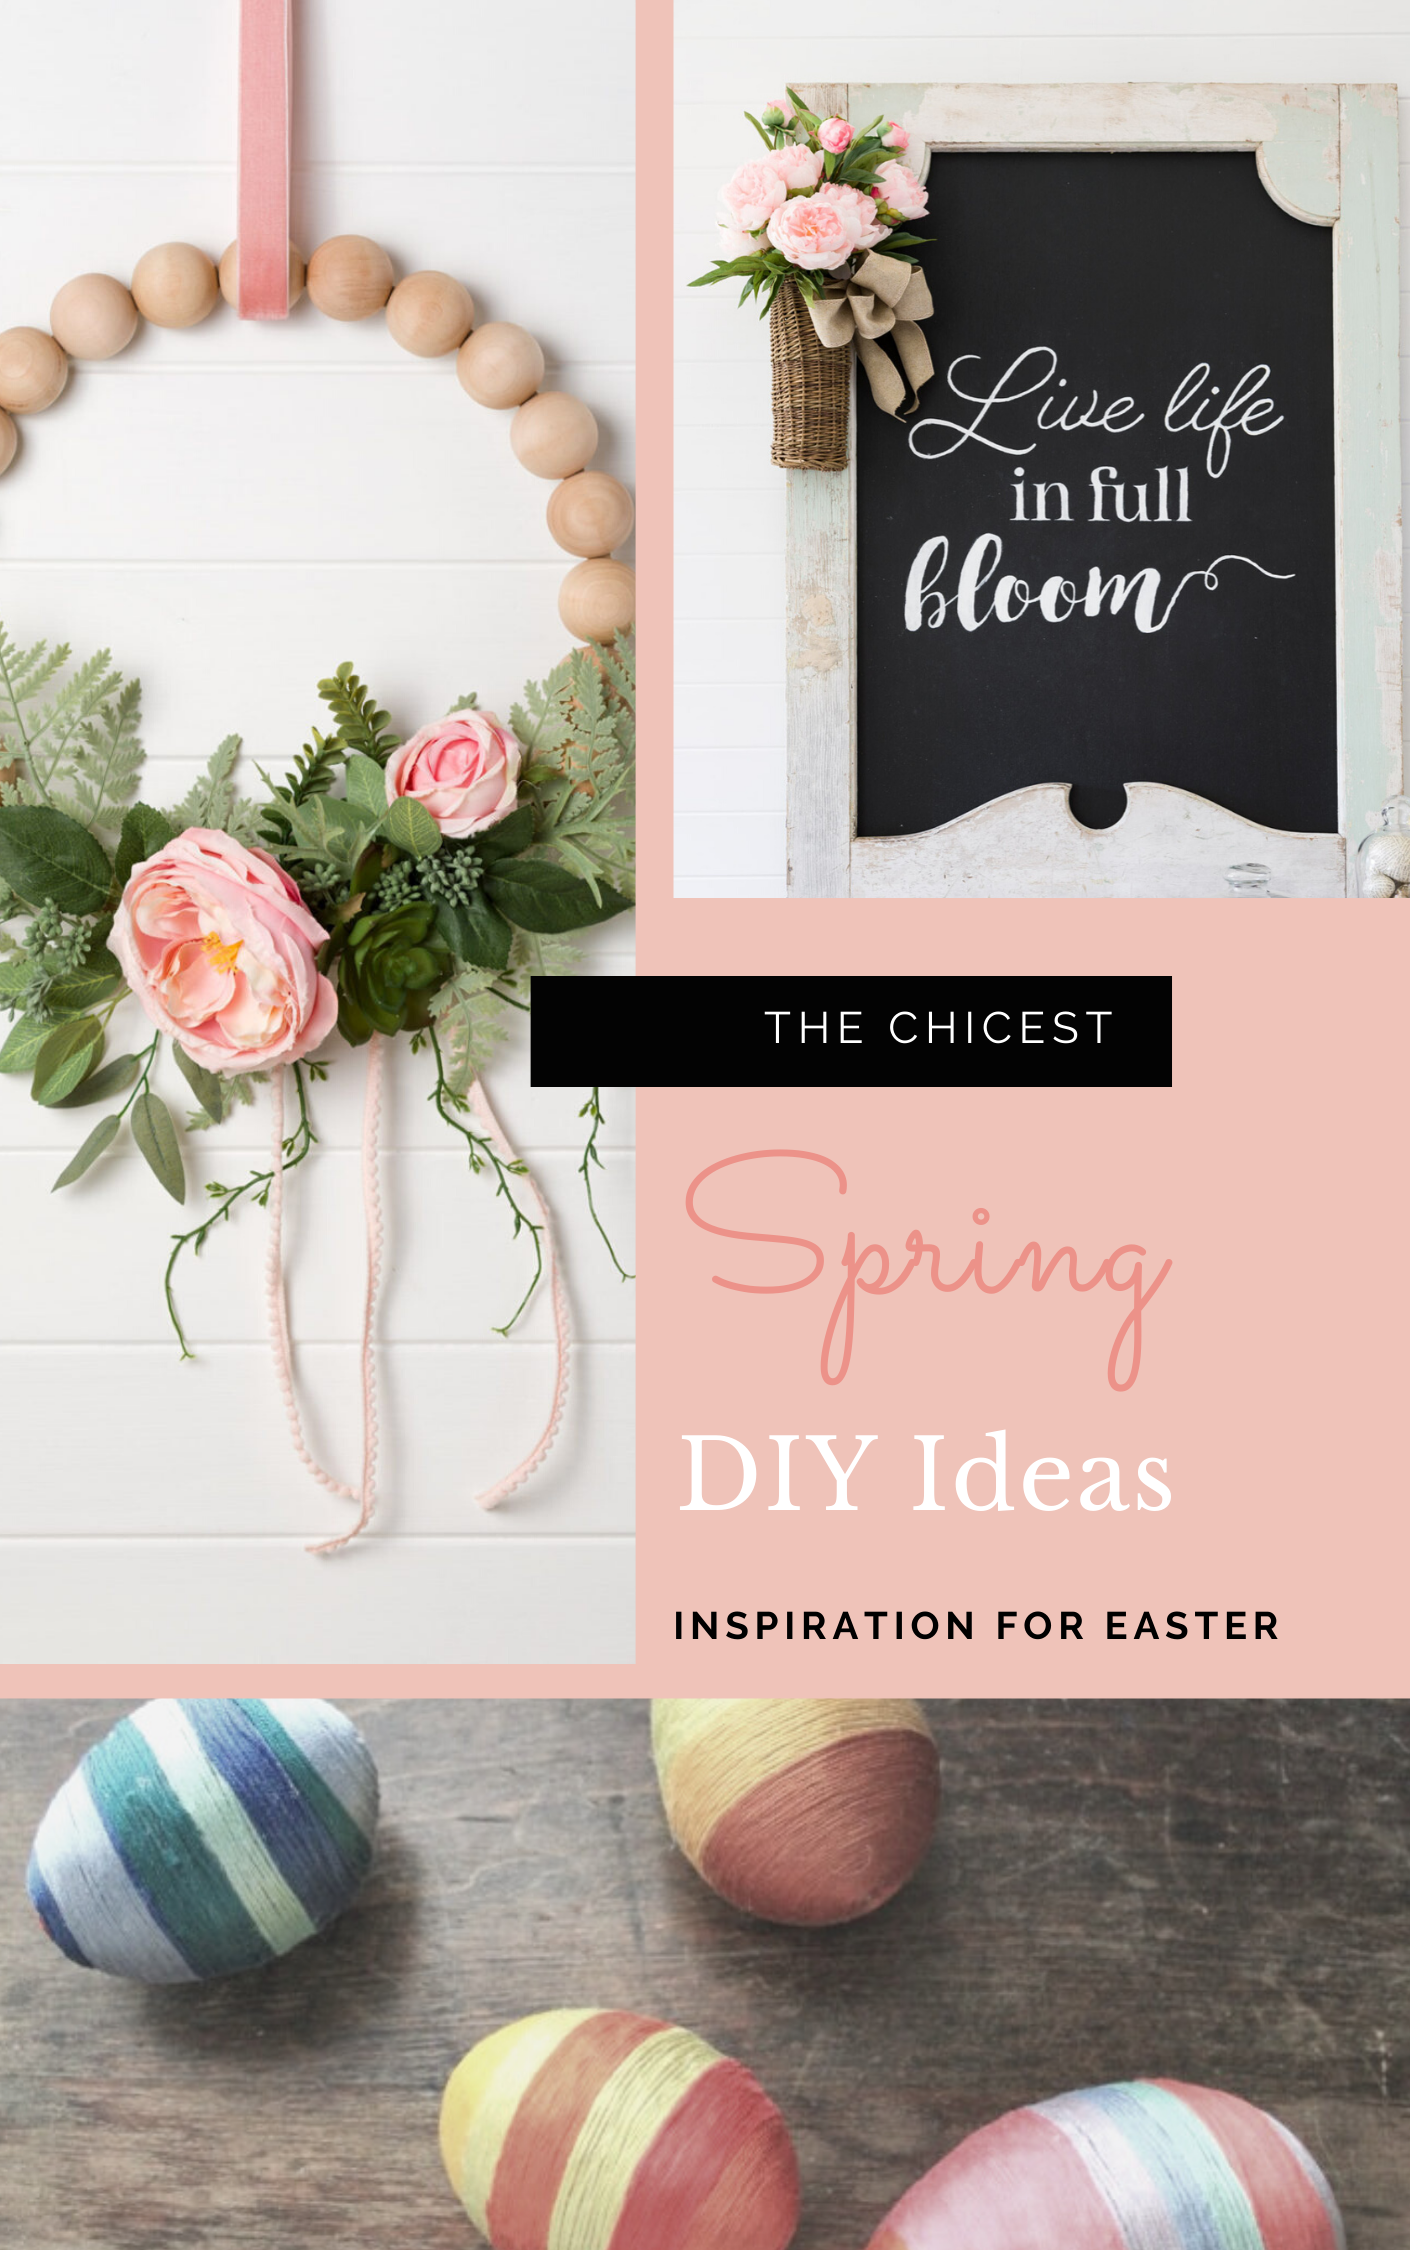 Celebrate Easter this season with the chicest DIY Easter décor, DIY ideas, and inspiration for the sweetest Easter parties! | glitterinc.com | @glitterinc